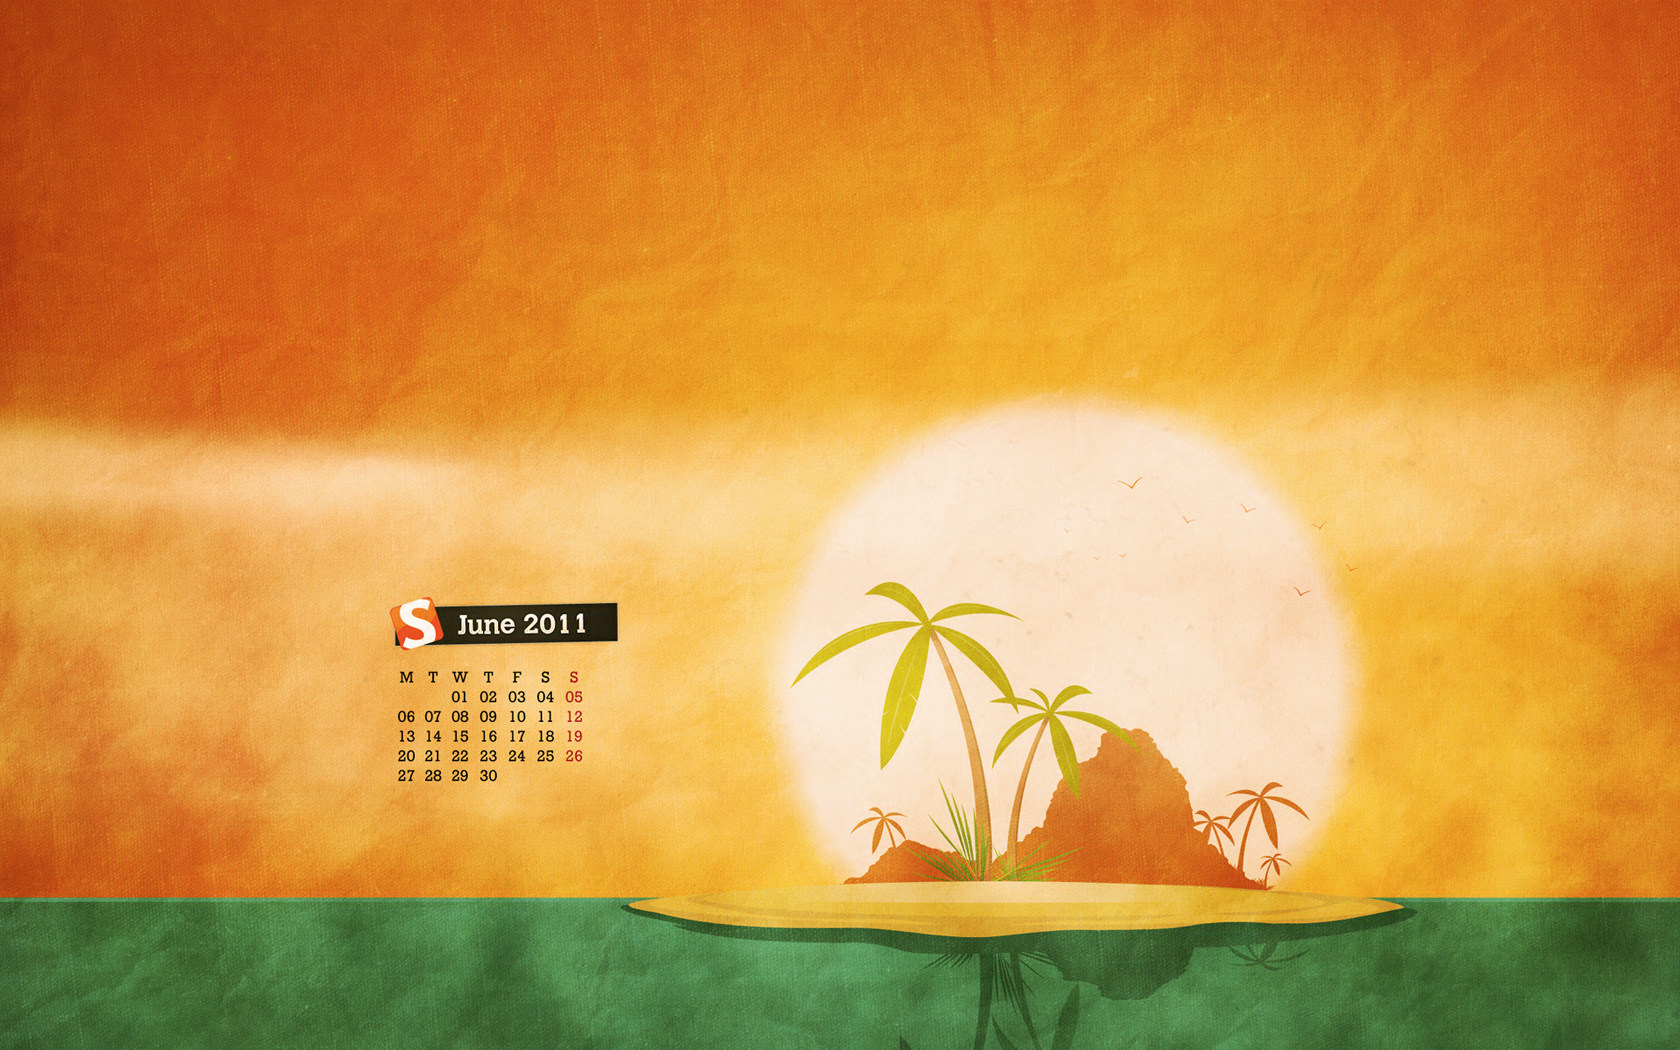 In January Calendar Wallpaper 29723